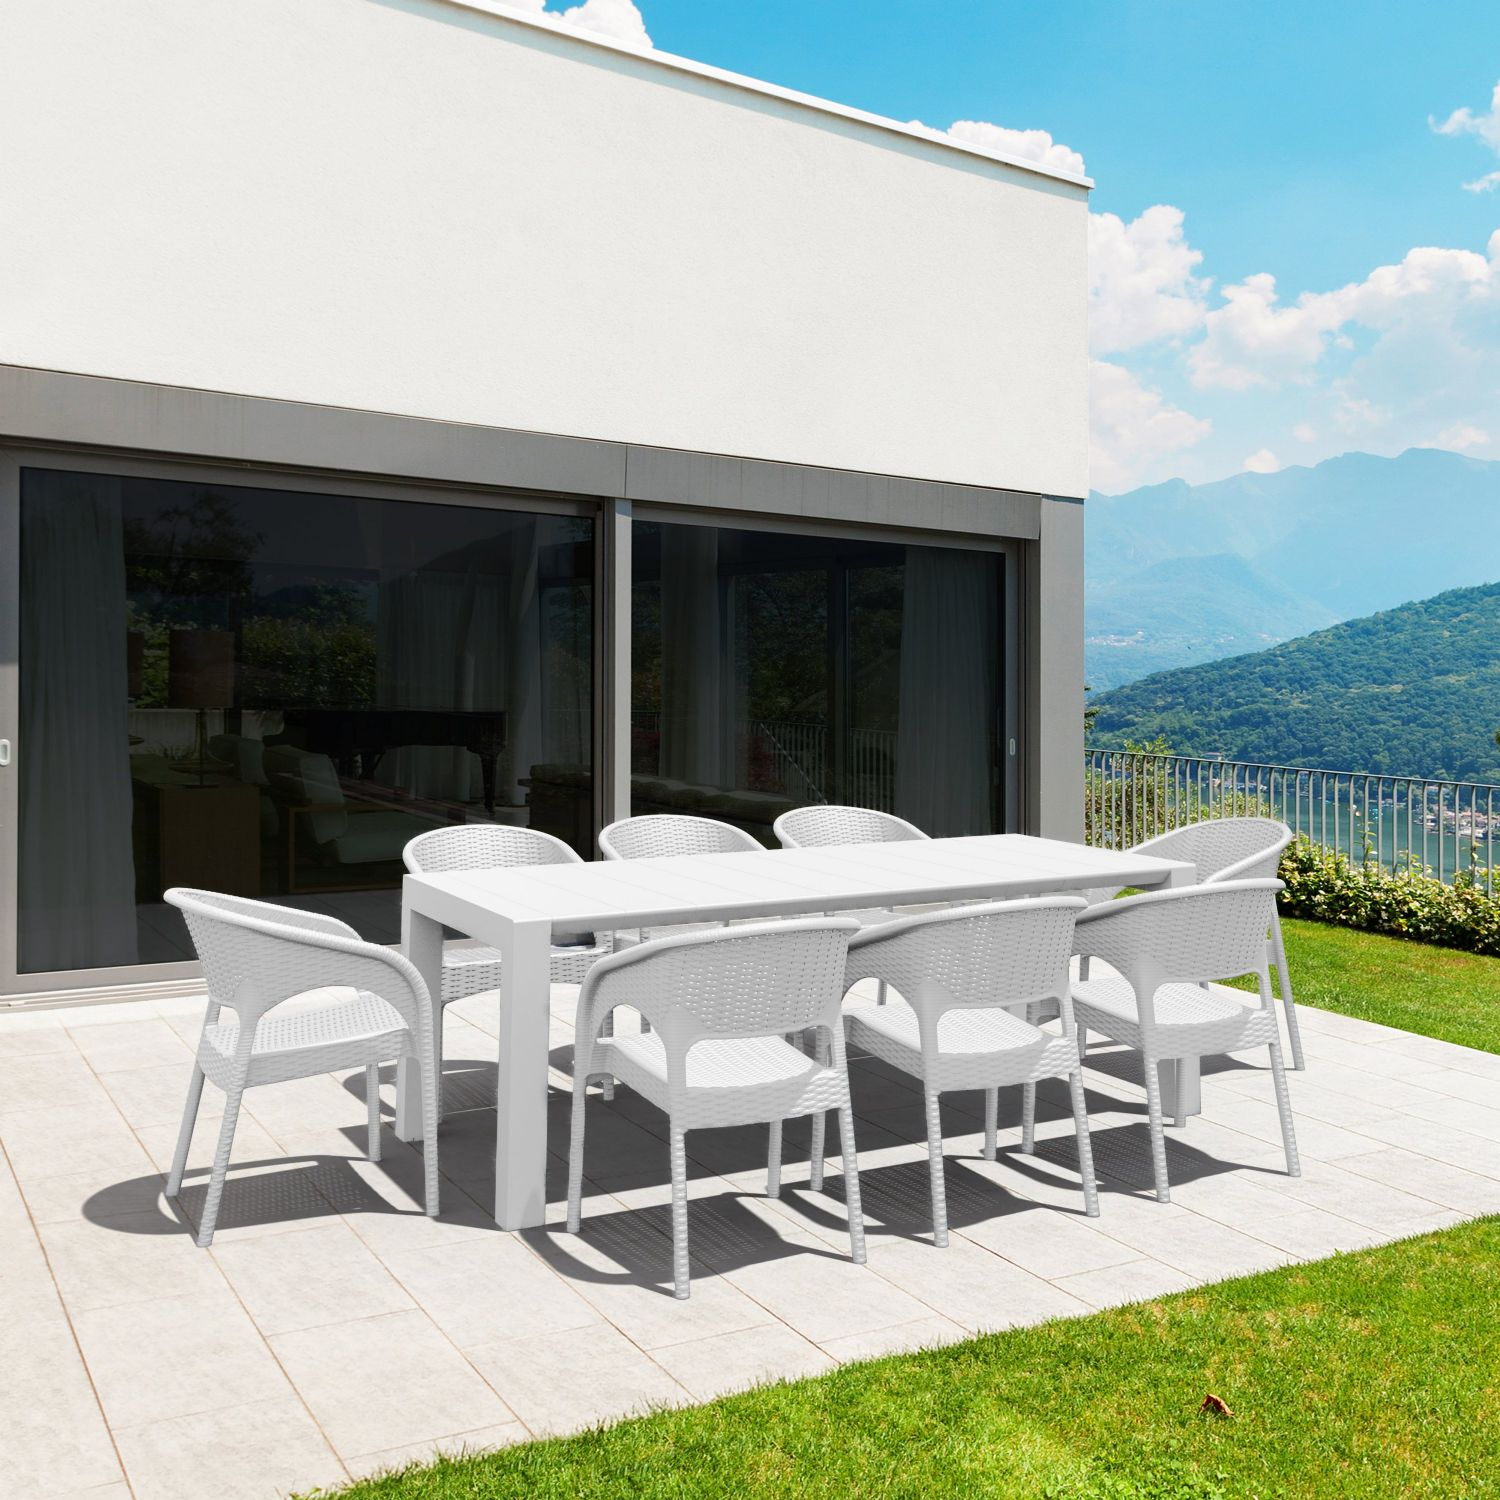 Vegas Outdoor Dining Table Extendable from 70 to 86 inch White ISP774-WH - 28